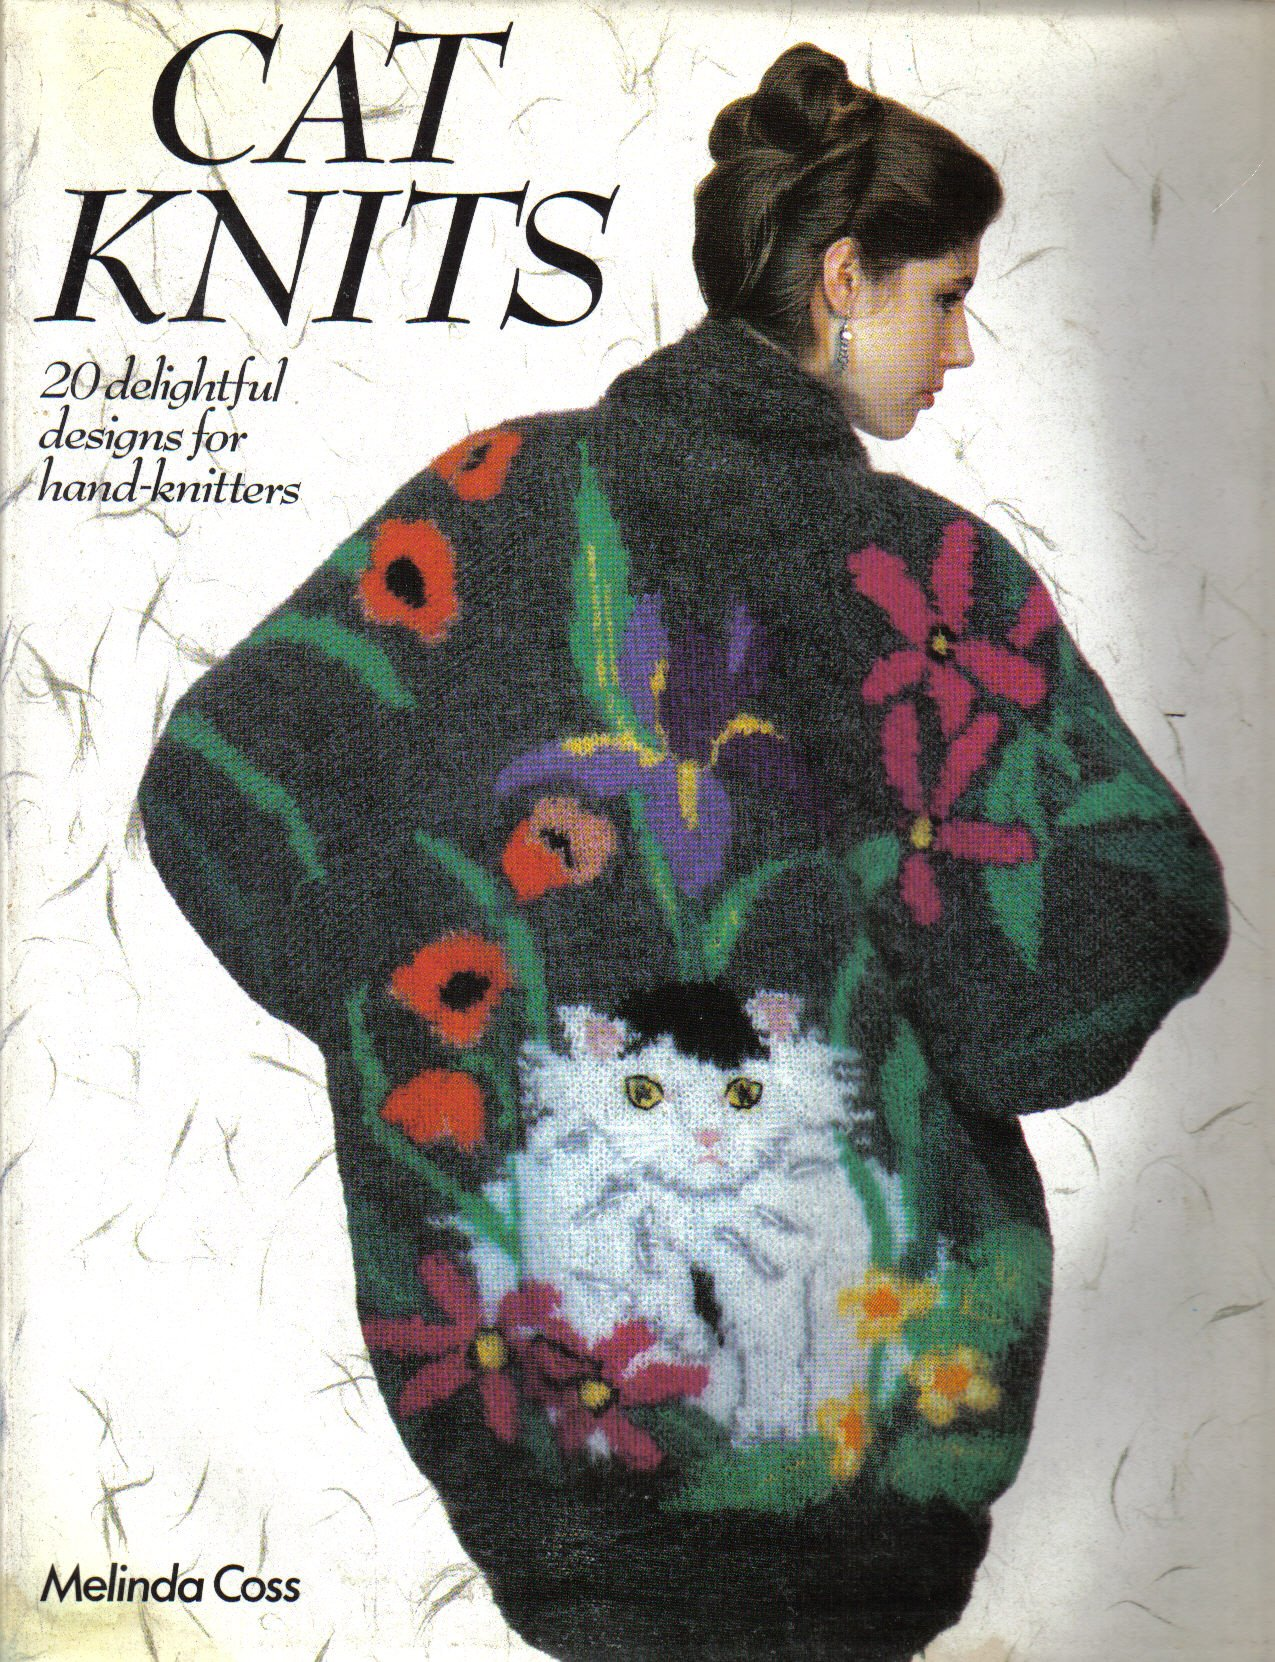 Cat Knits: 20 Delightful Designs for Hand Knitters: Amazon.co.uk ...